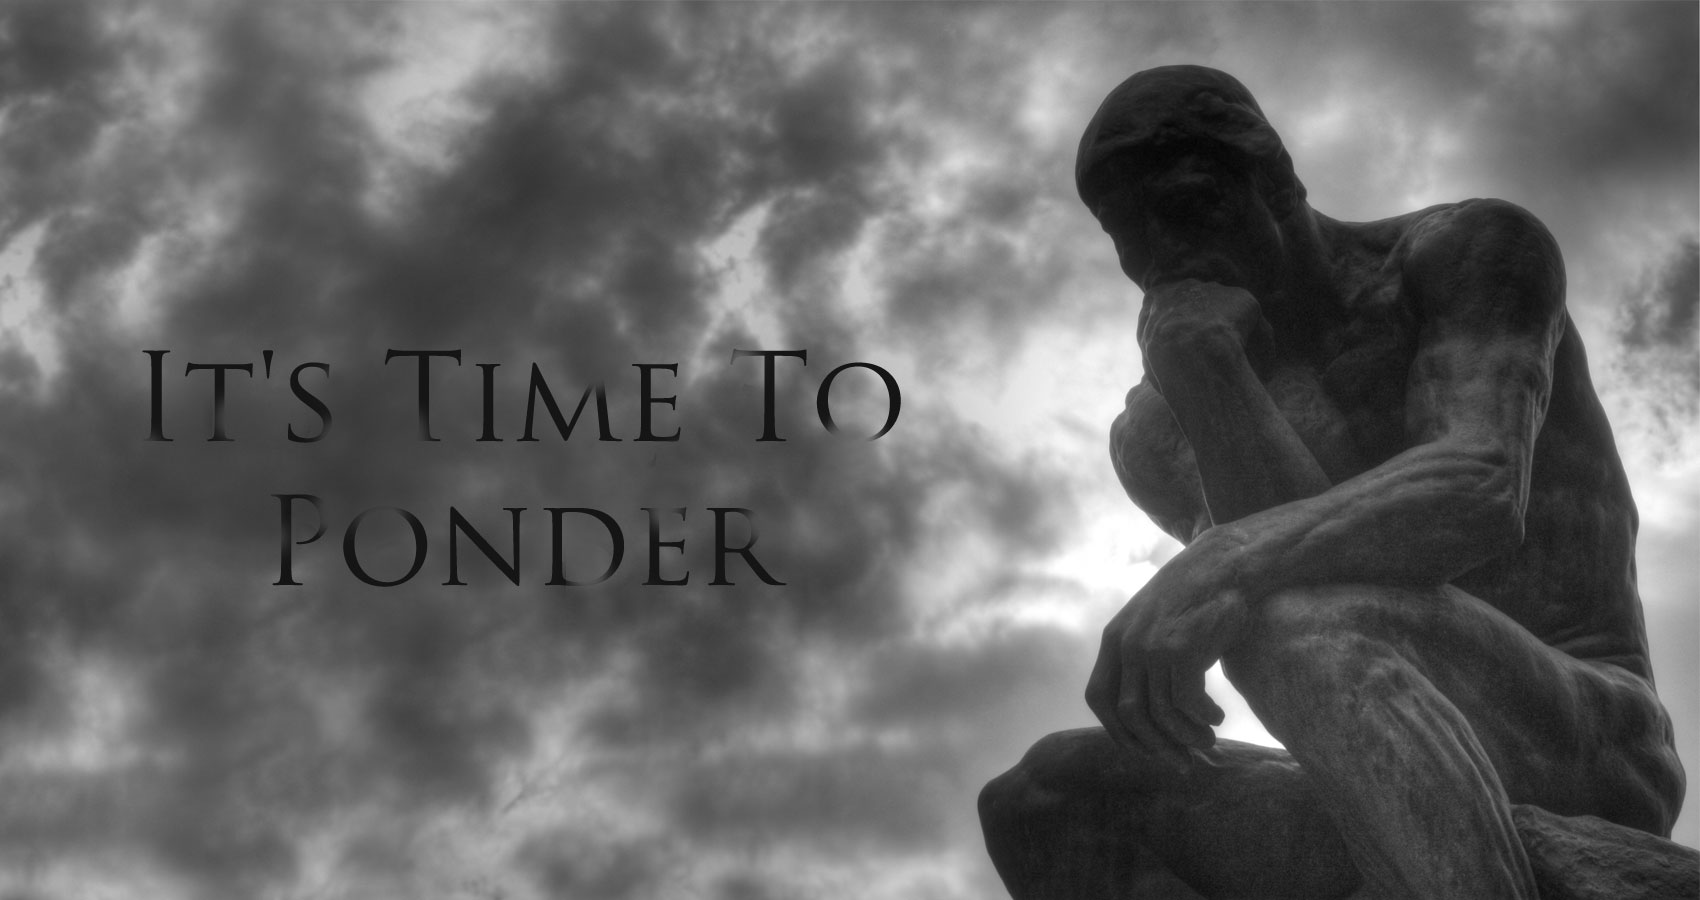 It's Time To Ponder, by Khurram Nizami at Spillwords.com